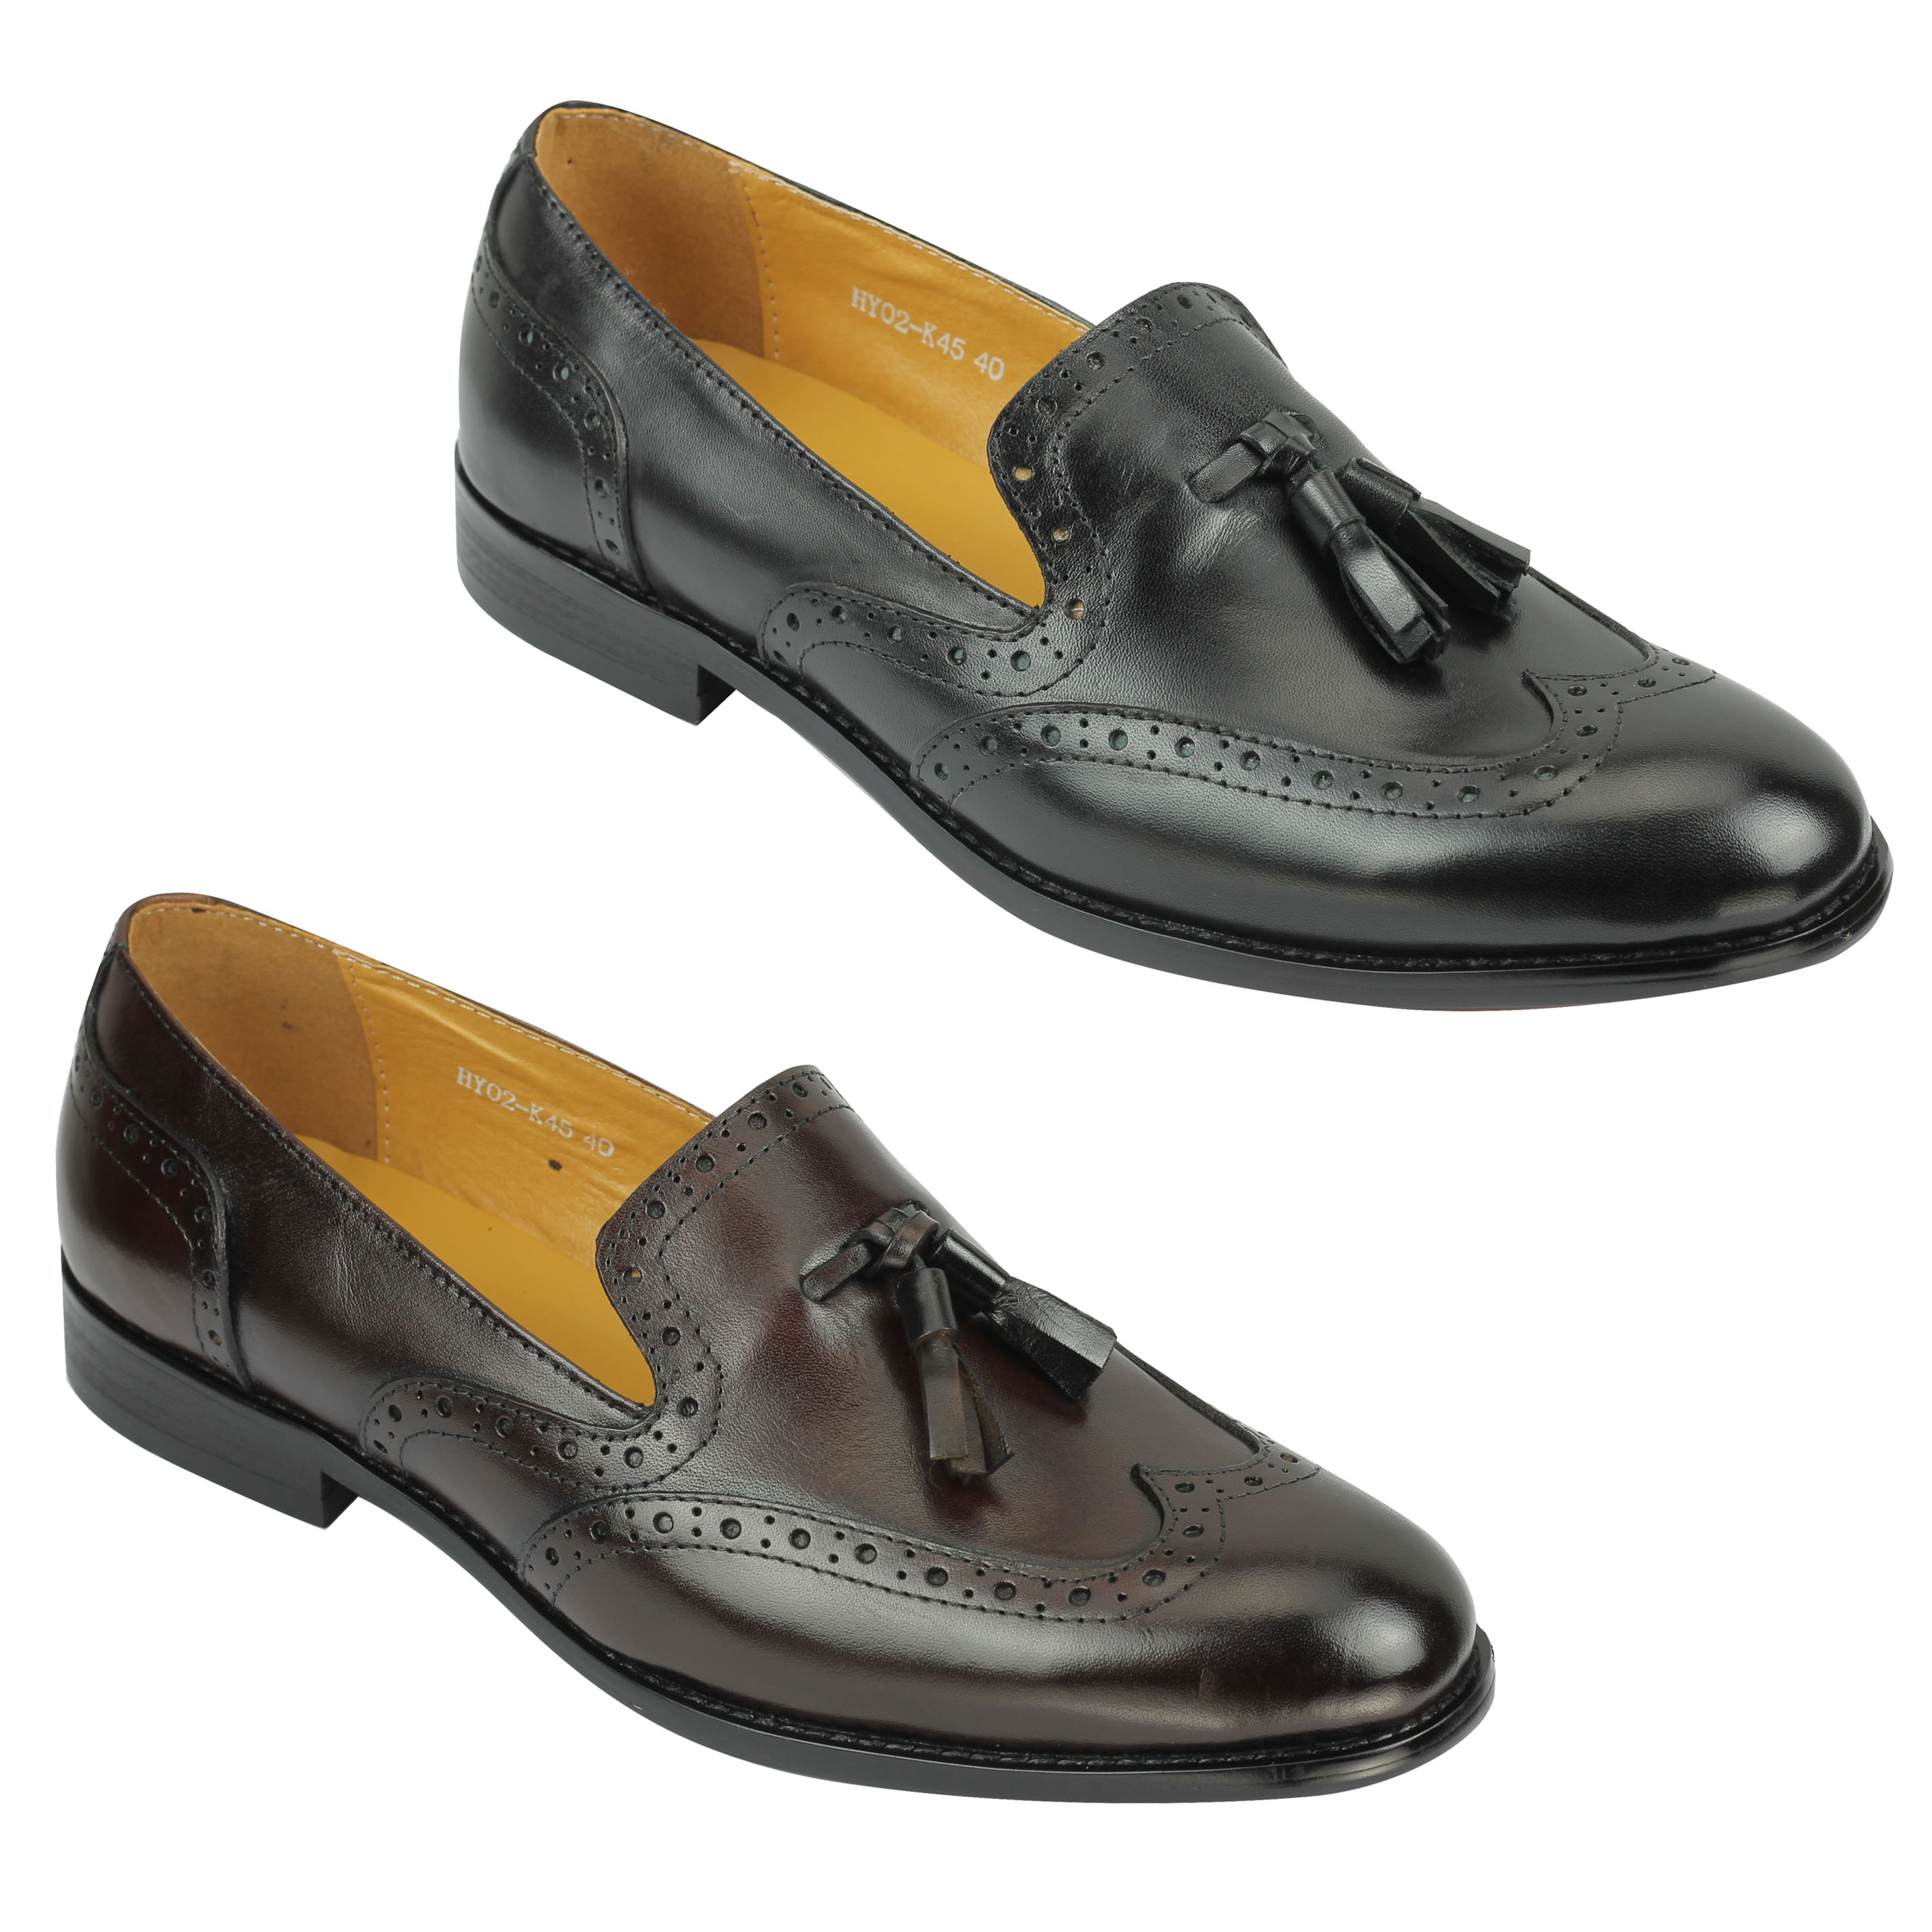 7d4c18cdaee Details about Mens 1920s Vintage Real Leather Tassel Loafers Slip on Brogue Shoes  Brown Black